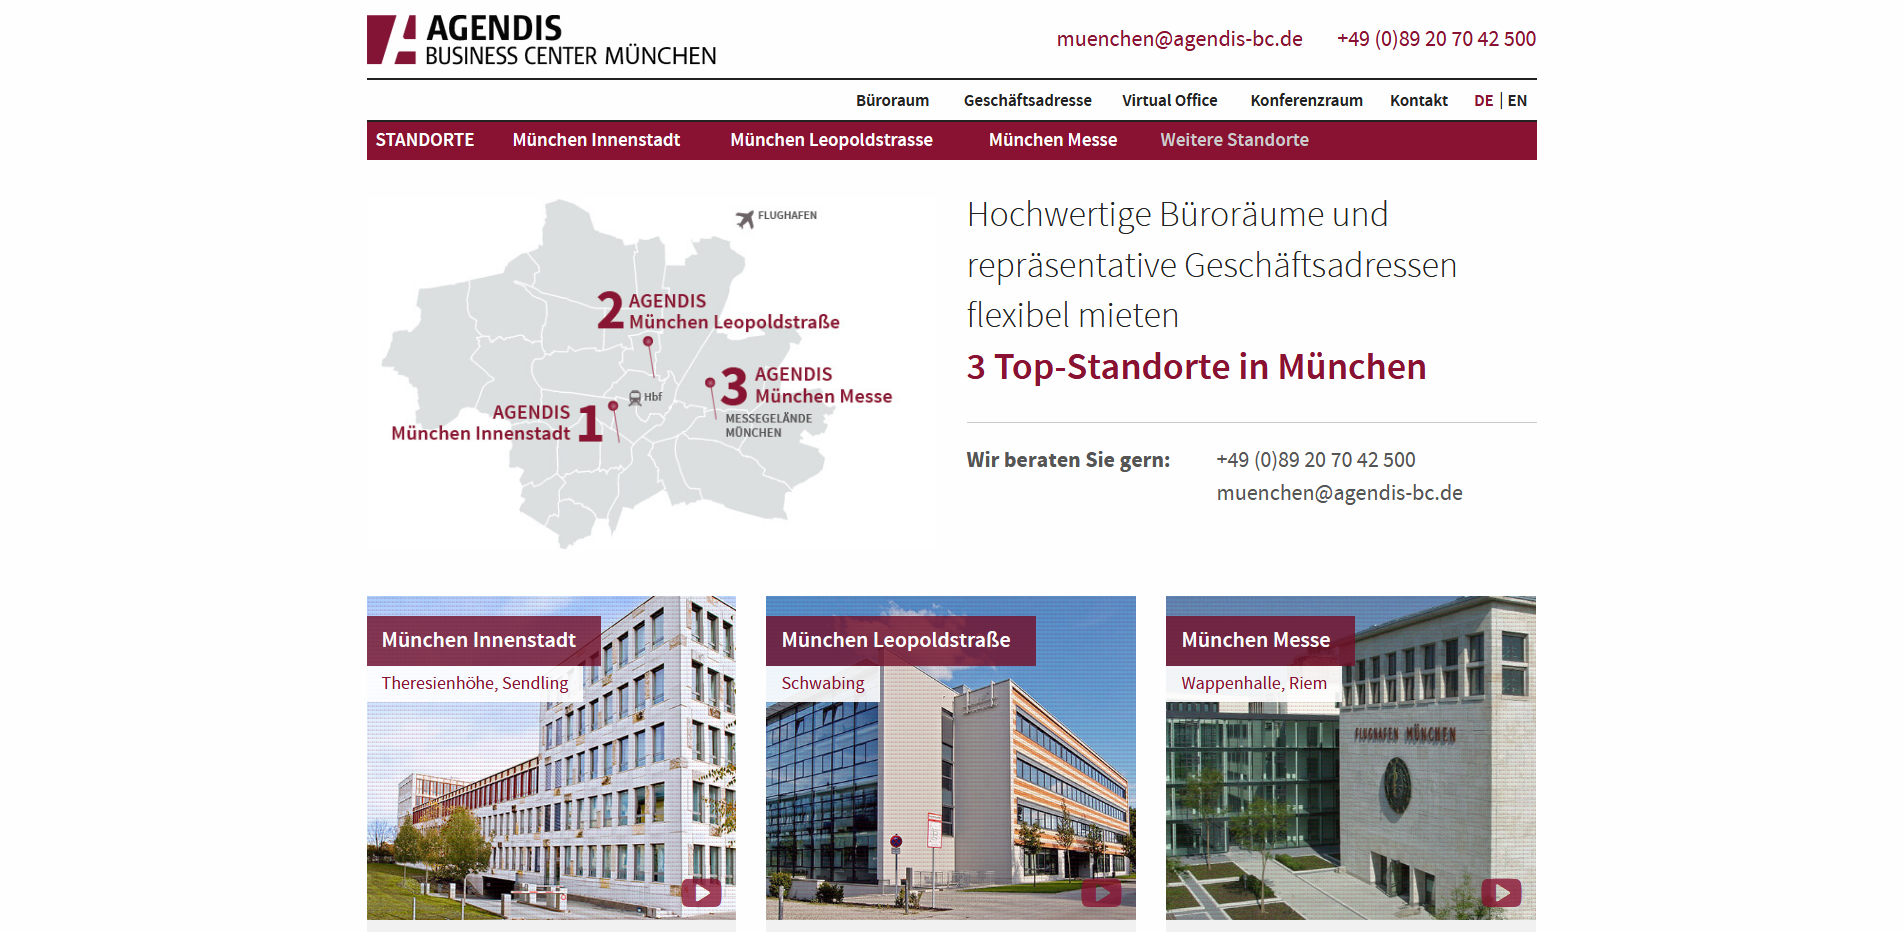 Agendis Business Center München